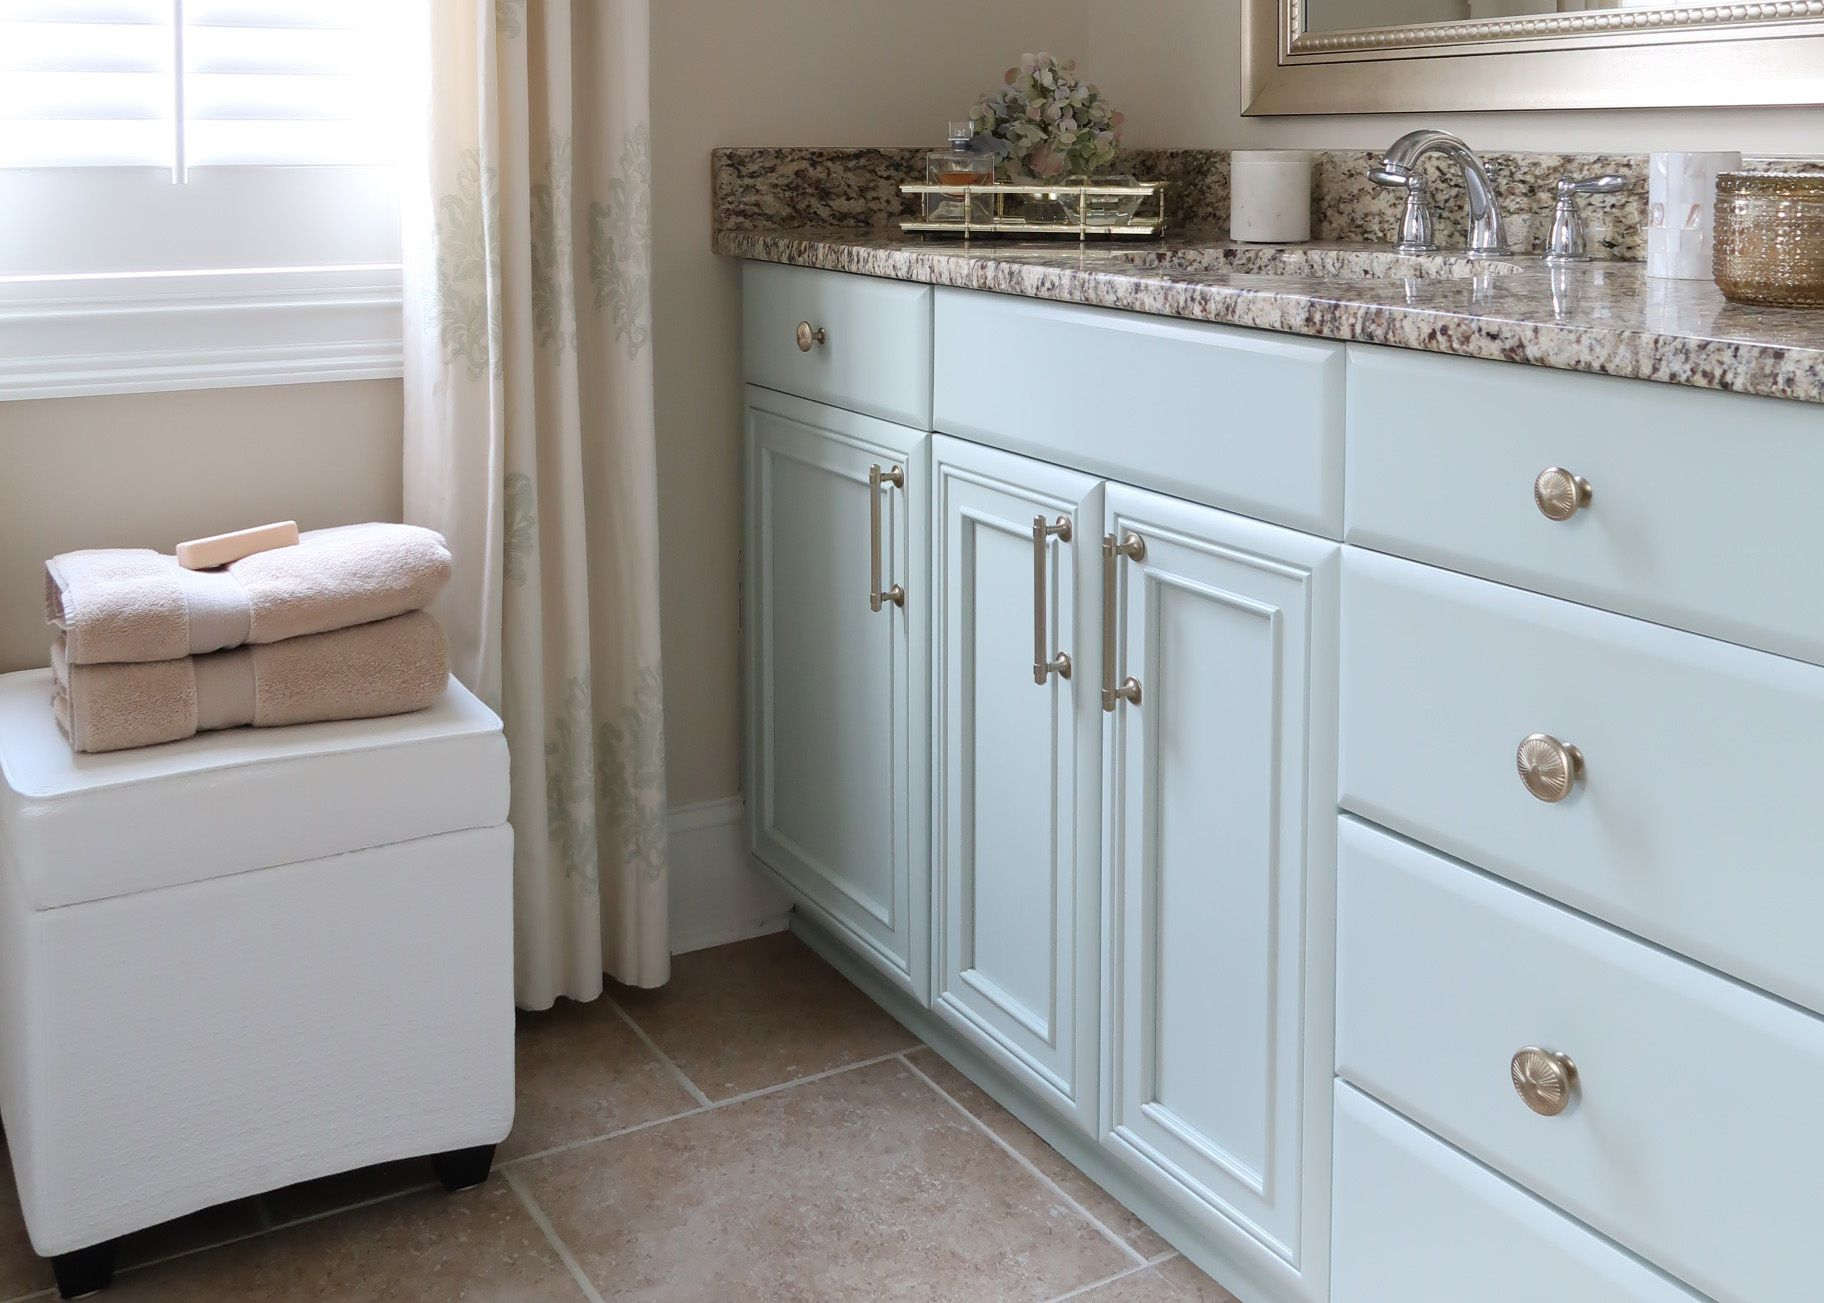 Dont Paint Your Cabinets White - Bathroom Cabinets, Painting Bathroom